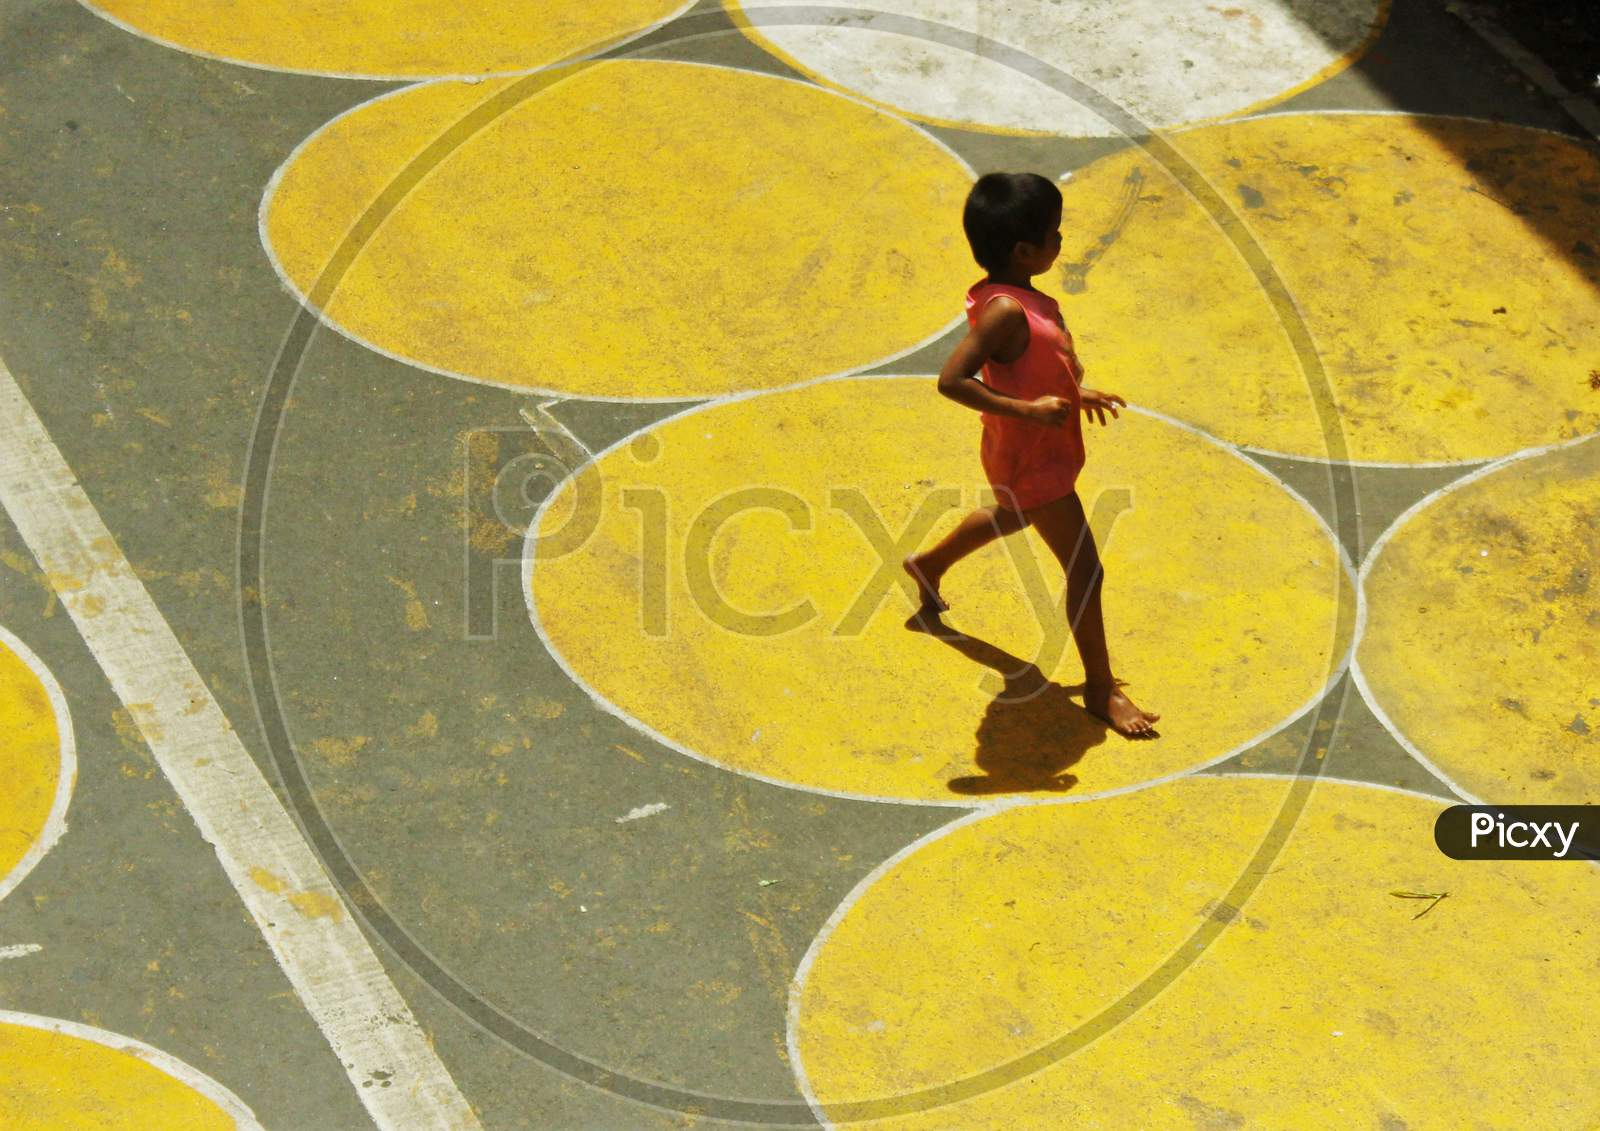 A Kid Runs On The Yellow Circles Painted For Physical Distancing At A Residential-Cum-Market Area, In Mumbai, India On June 29, 2020.